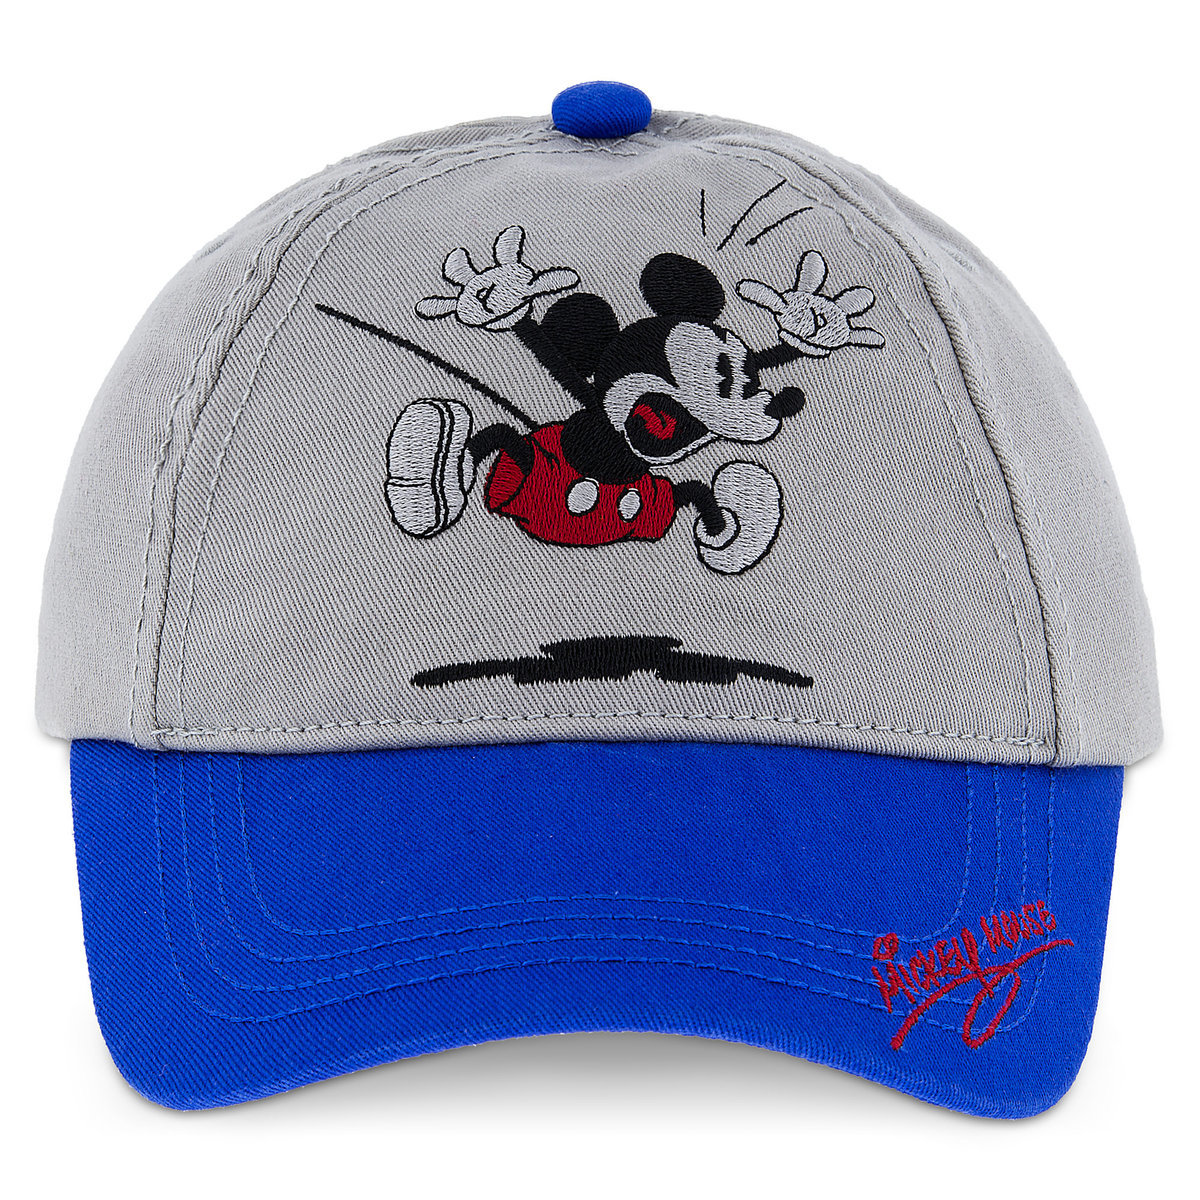 485398a0e44 Add to My Lists. Disney Kids Baseball Cap - Timeless Mickey Mouse ...